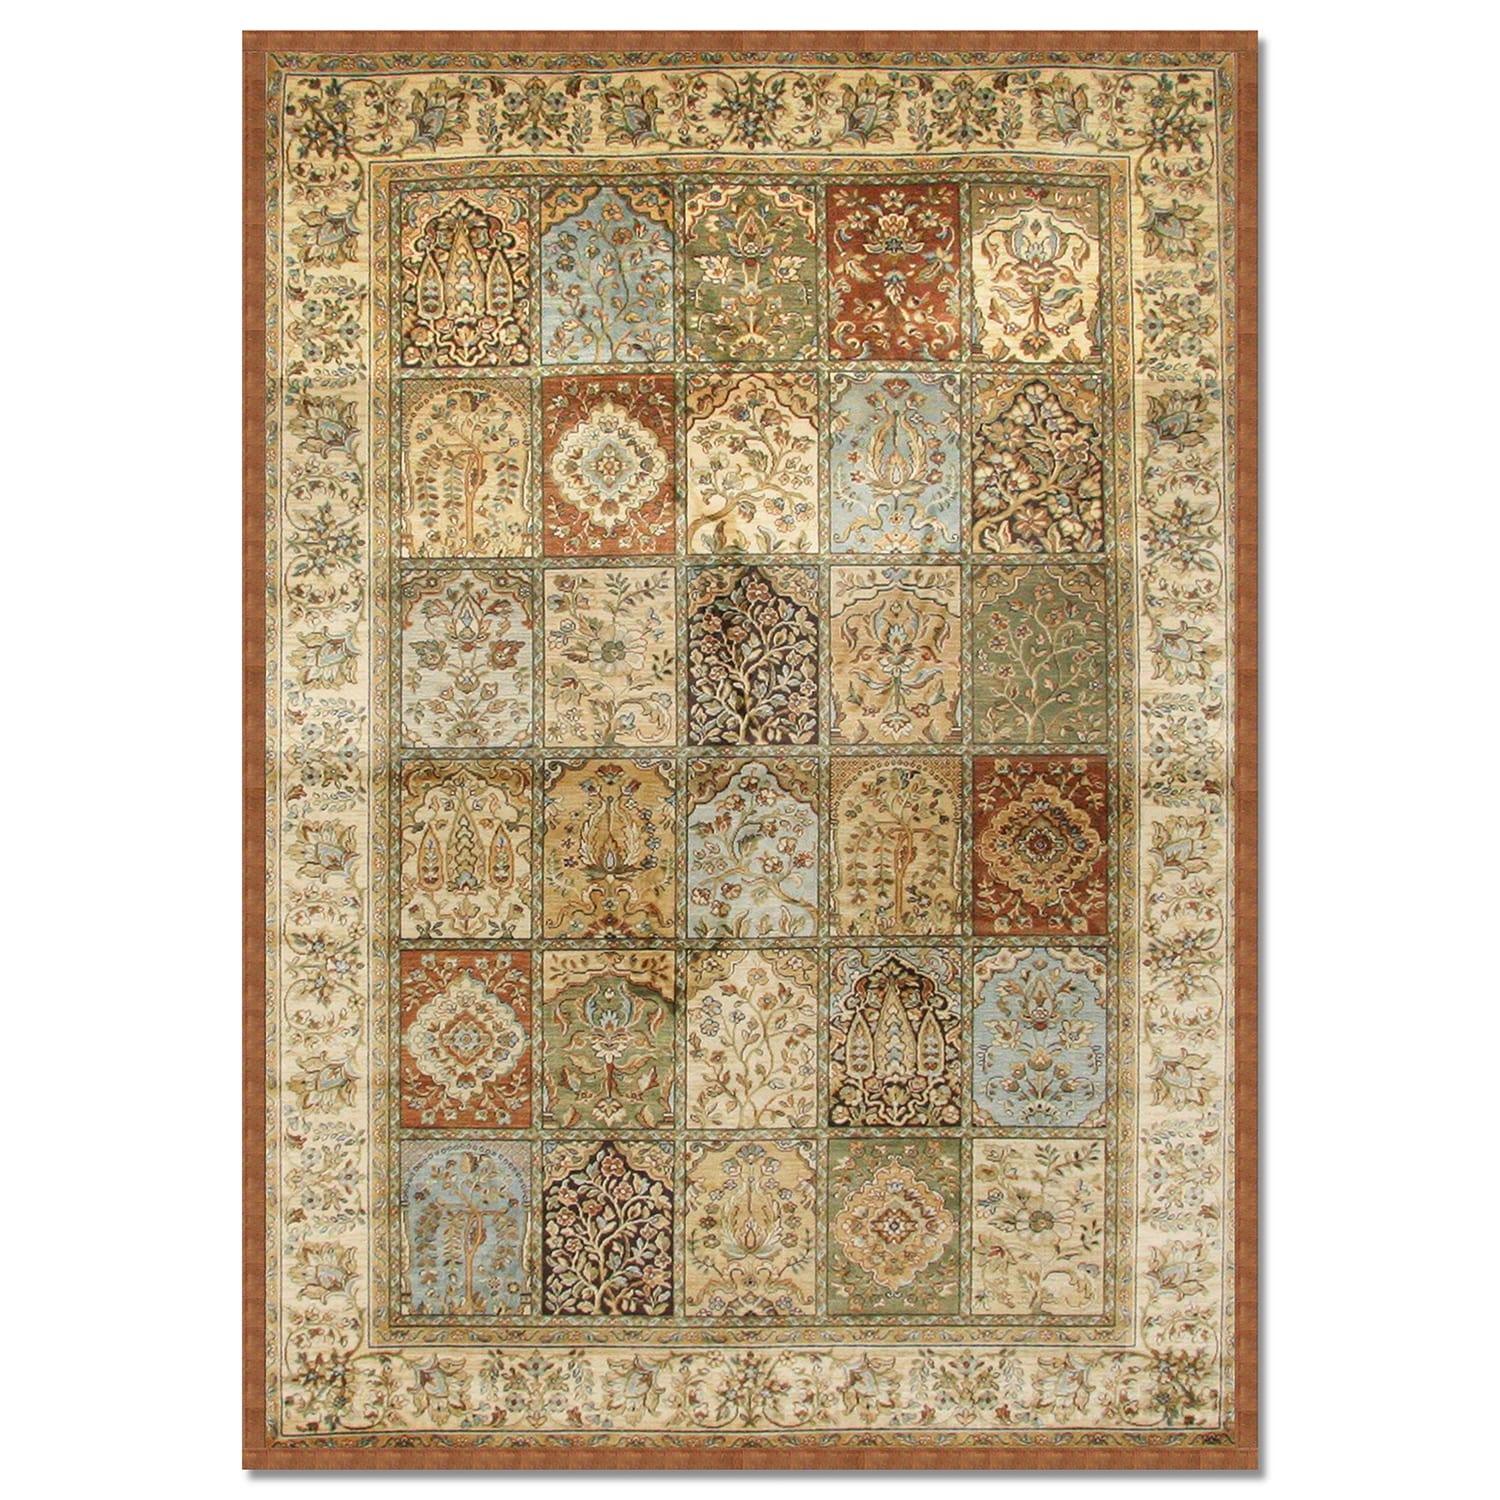 Sonoma mosaic area rugs area rug 8 39 x 10 39 value city for Dining room rugs 8 x 10